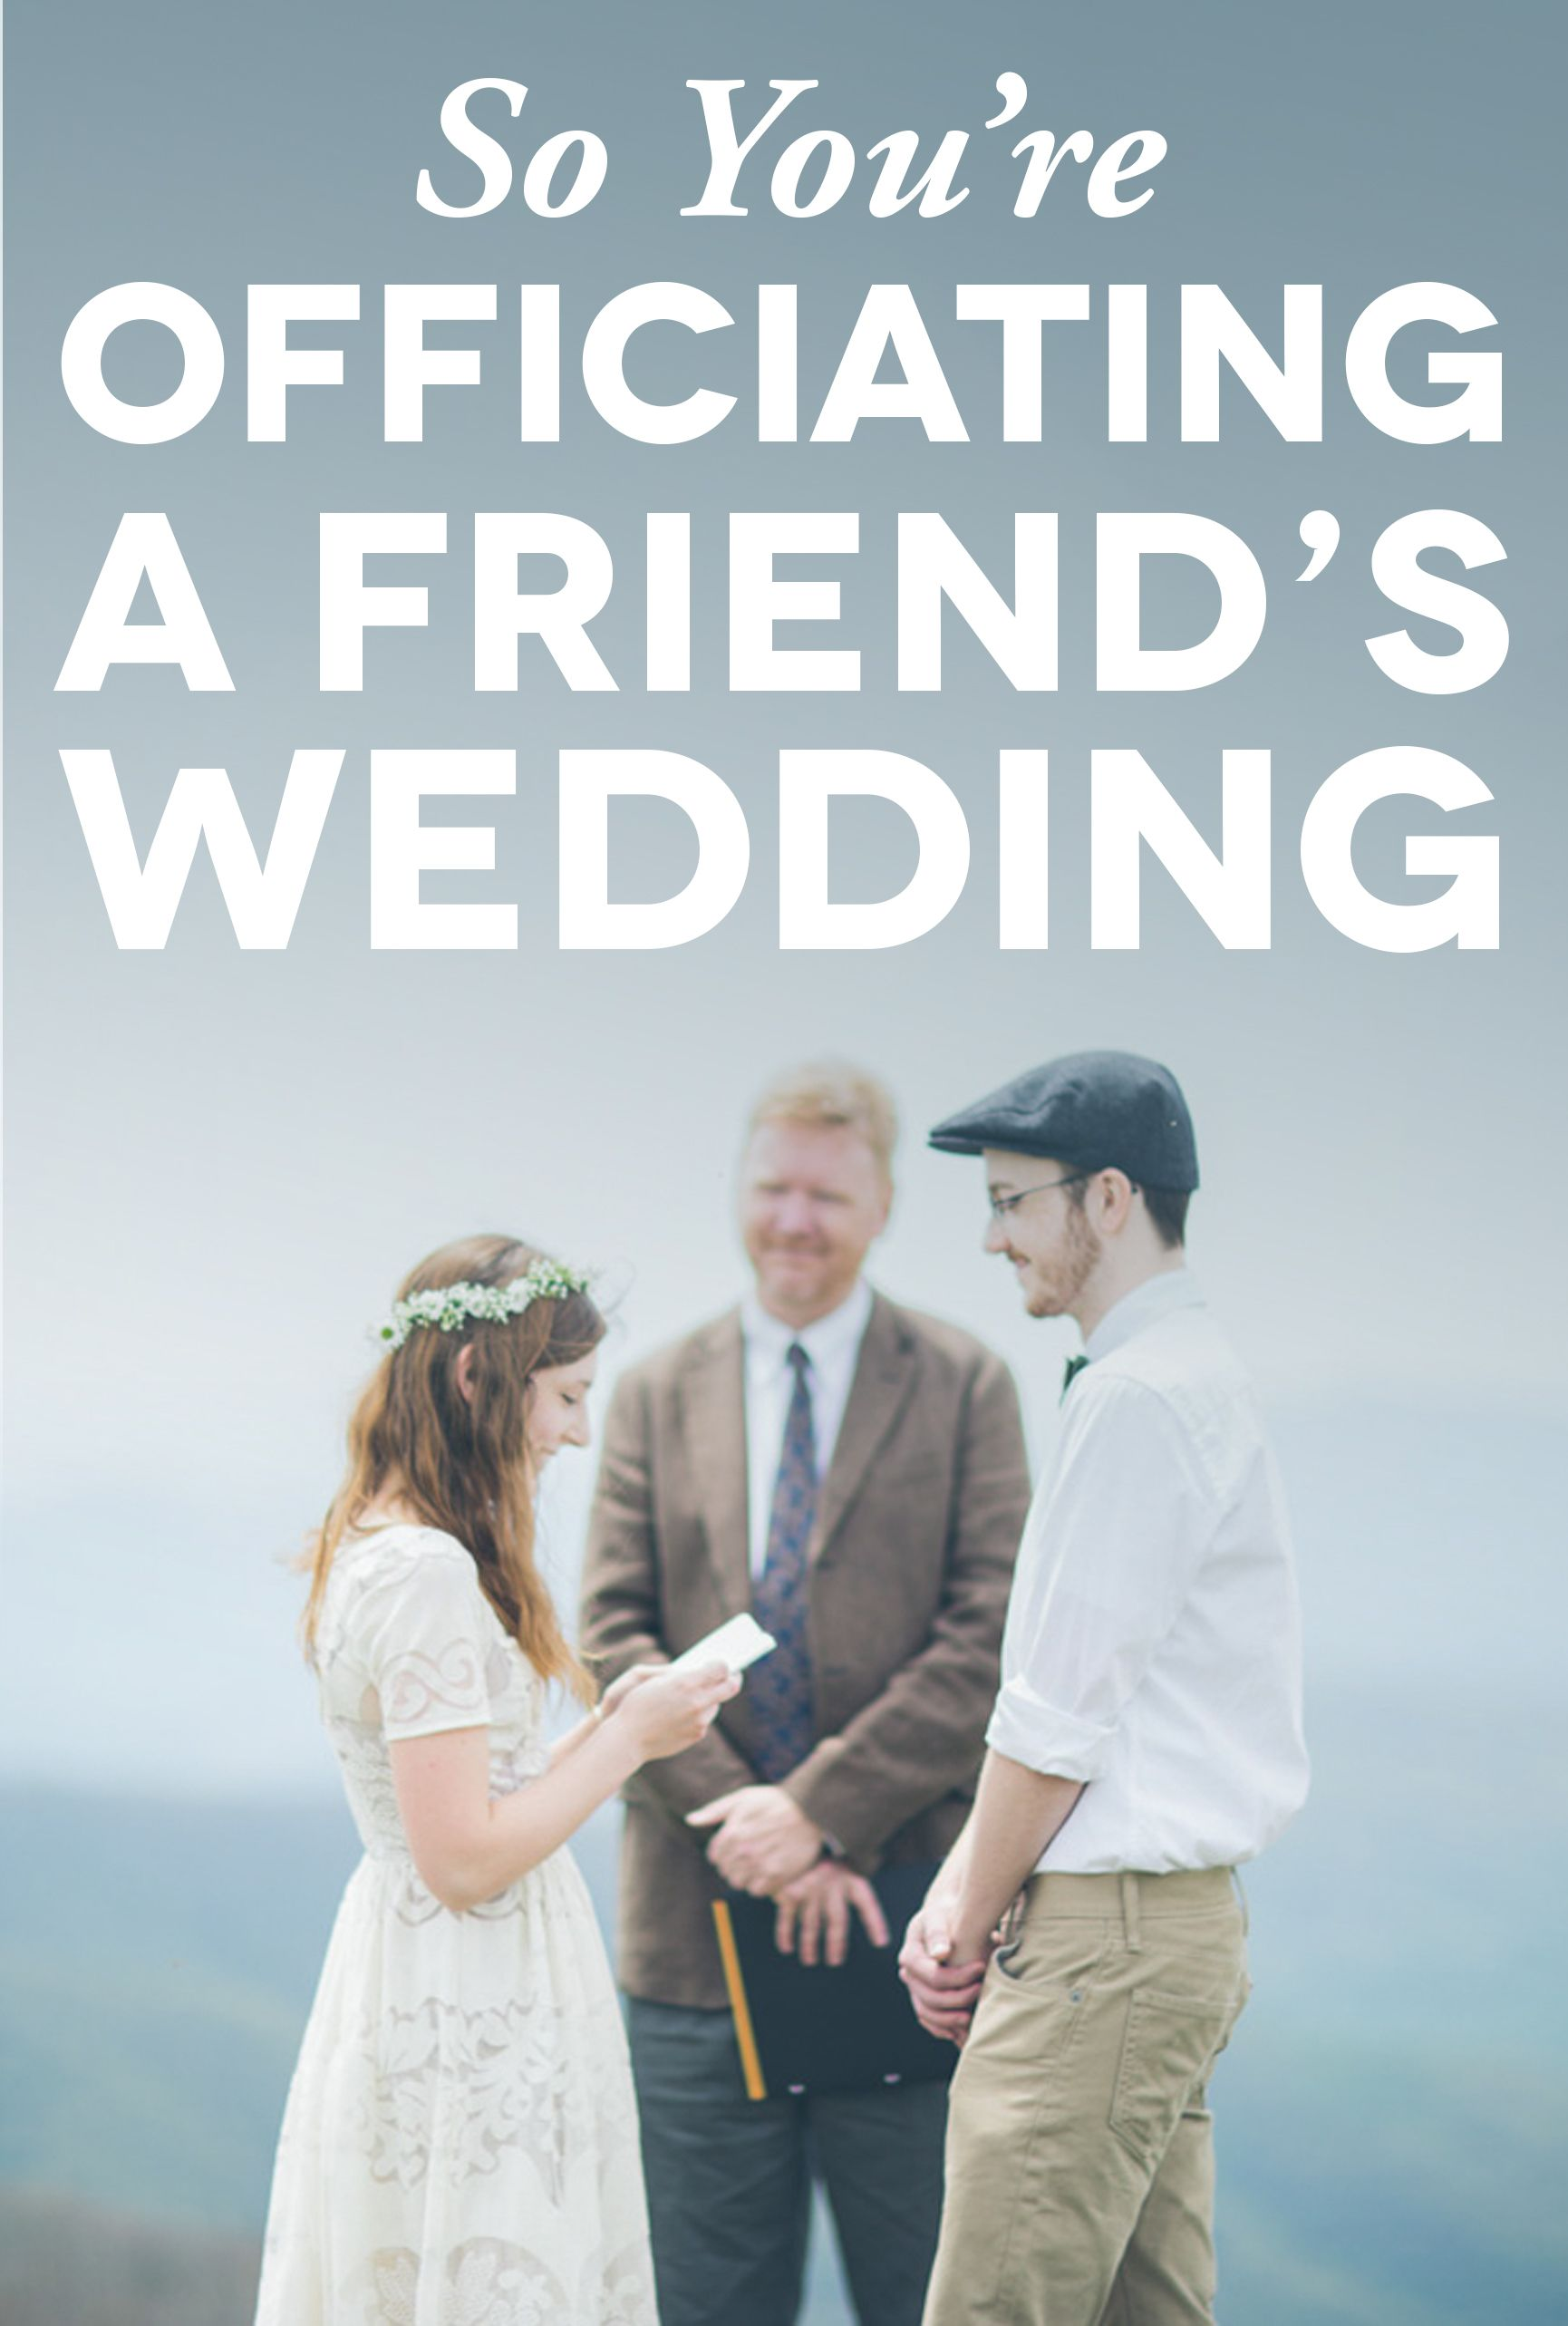 Pin on Wedding Officiating